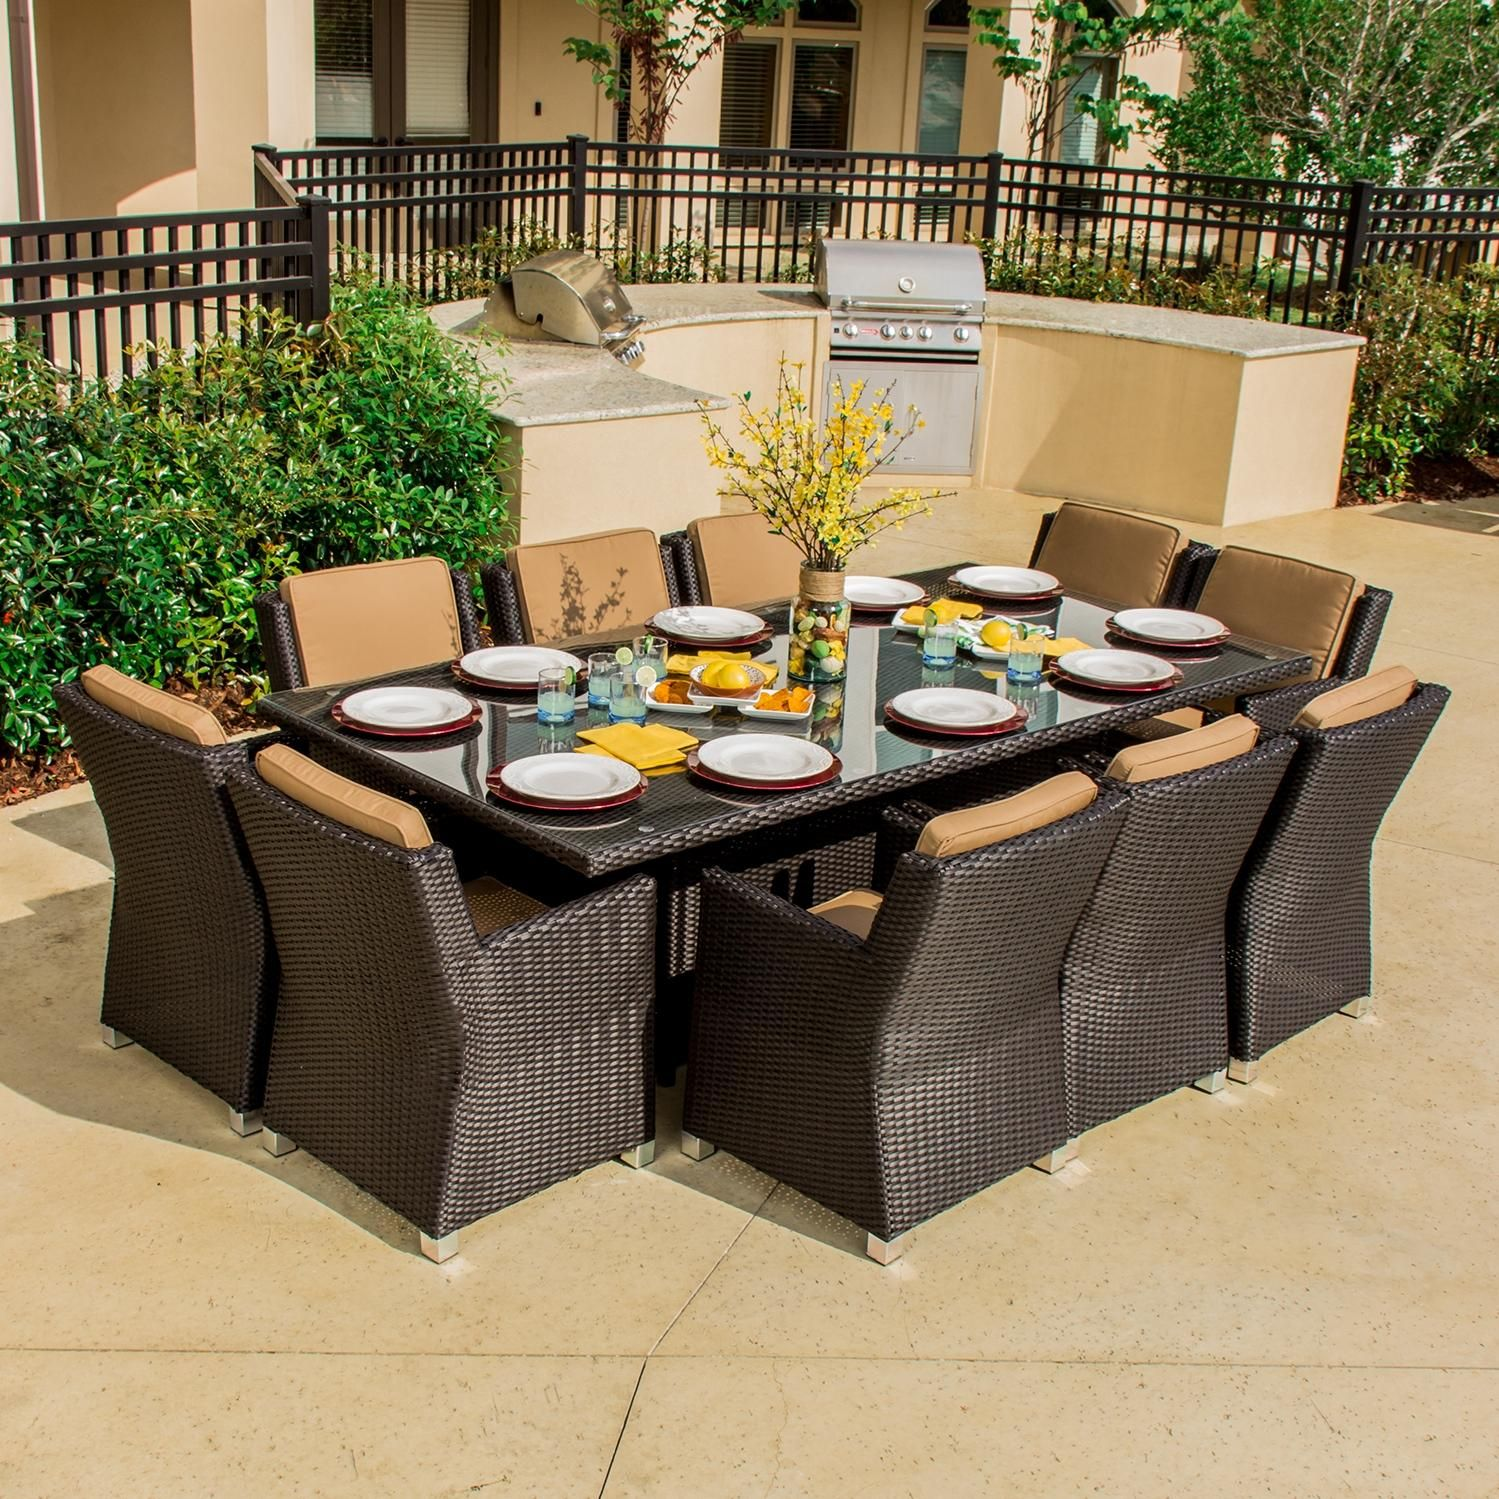 Avery Island 10 Person Resin Wicker Patio Dining Set Ultimate